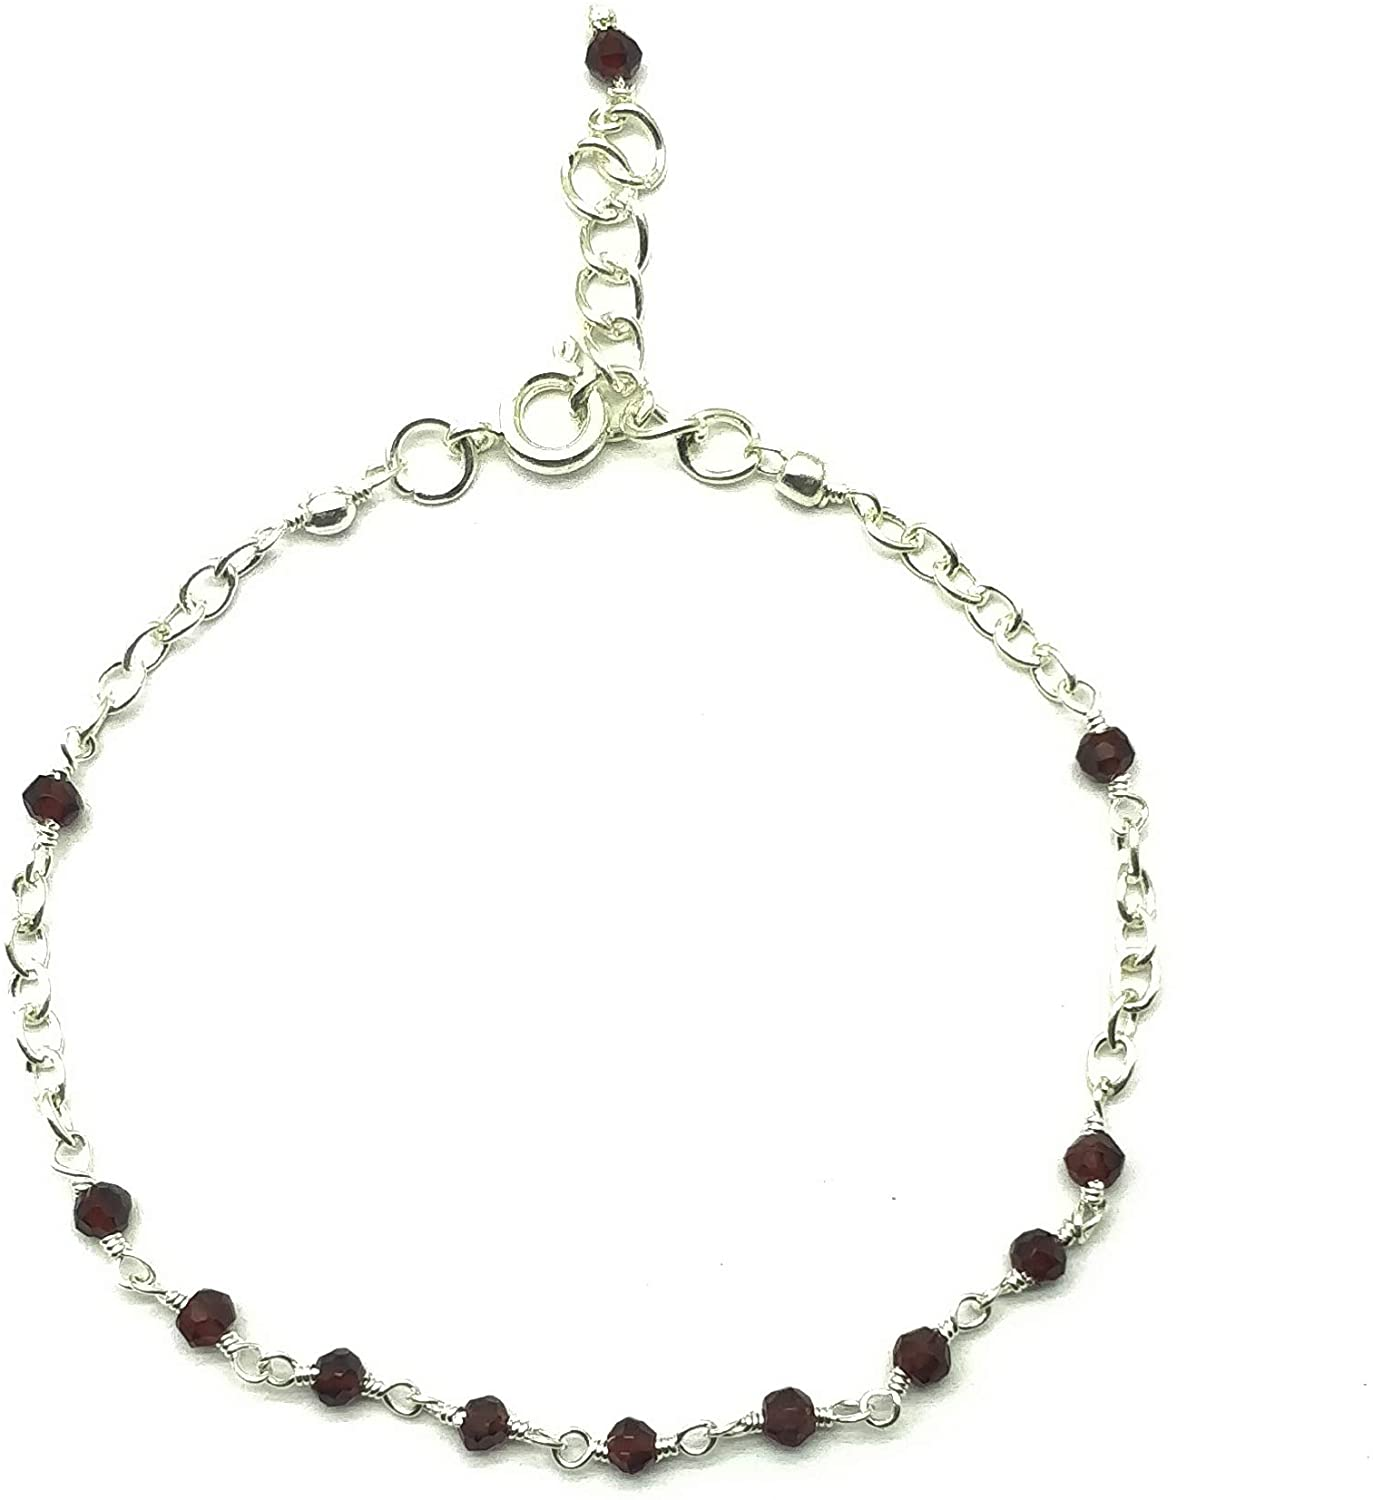 Natural Red Garnet Silver plated, 3mm Rondelle Faceted 7 inch Adjustable bracelet beaded bar bracelet jewelry for GF & Wife, Mother gift